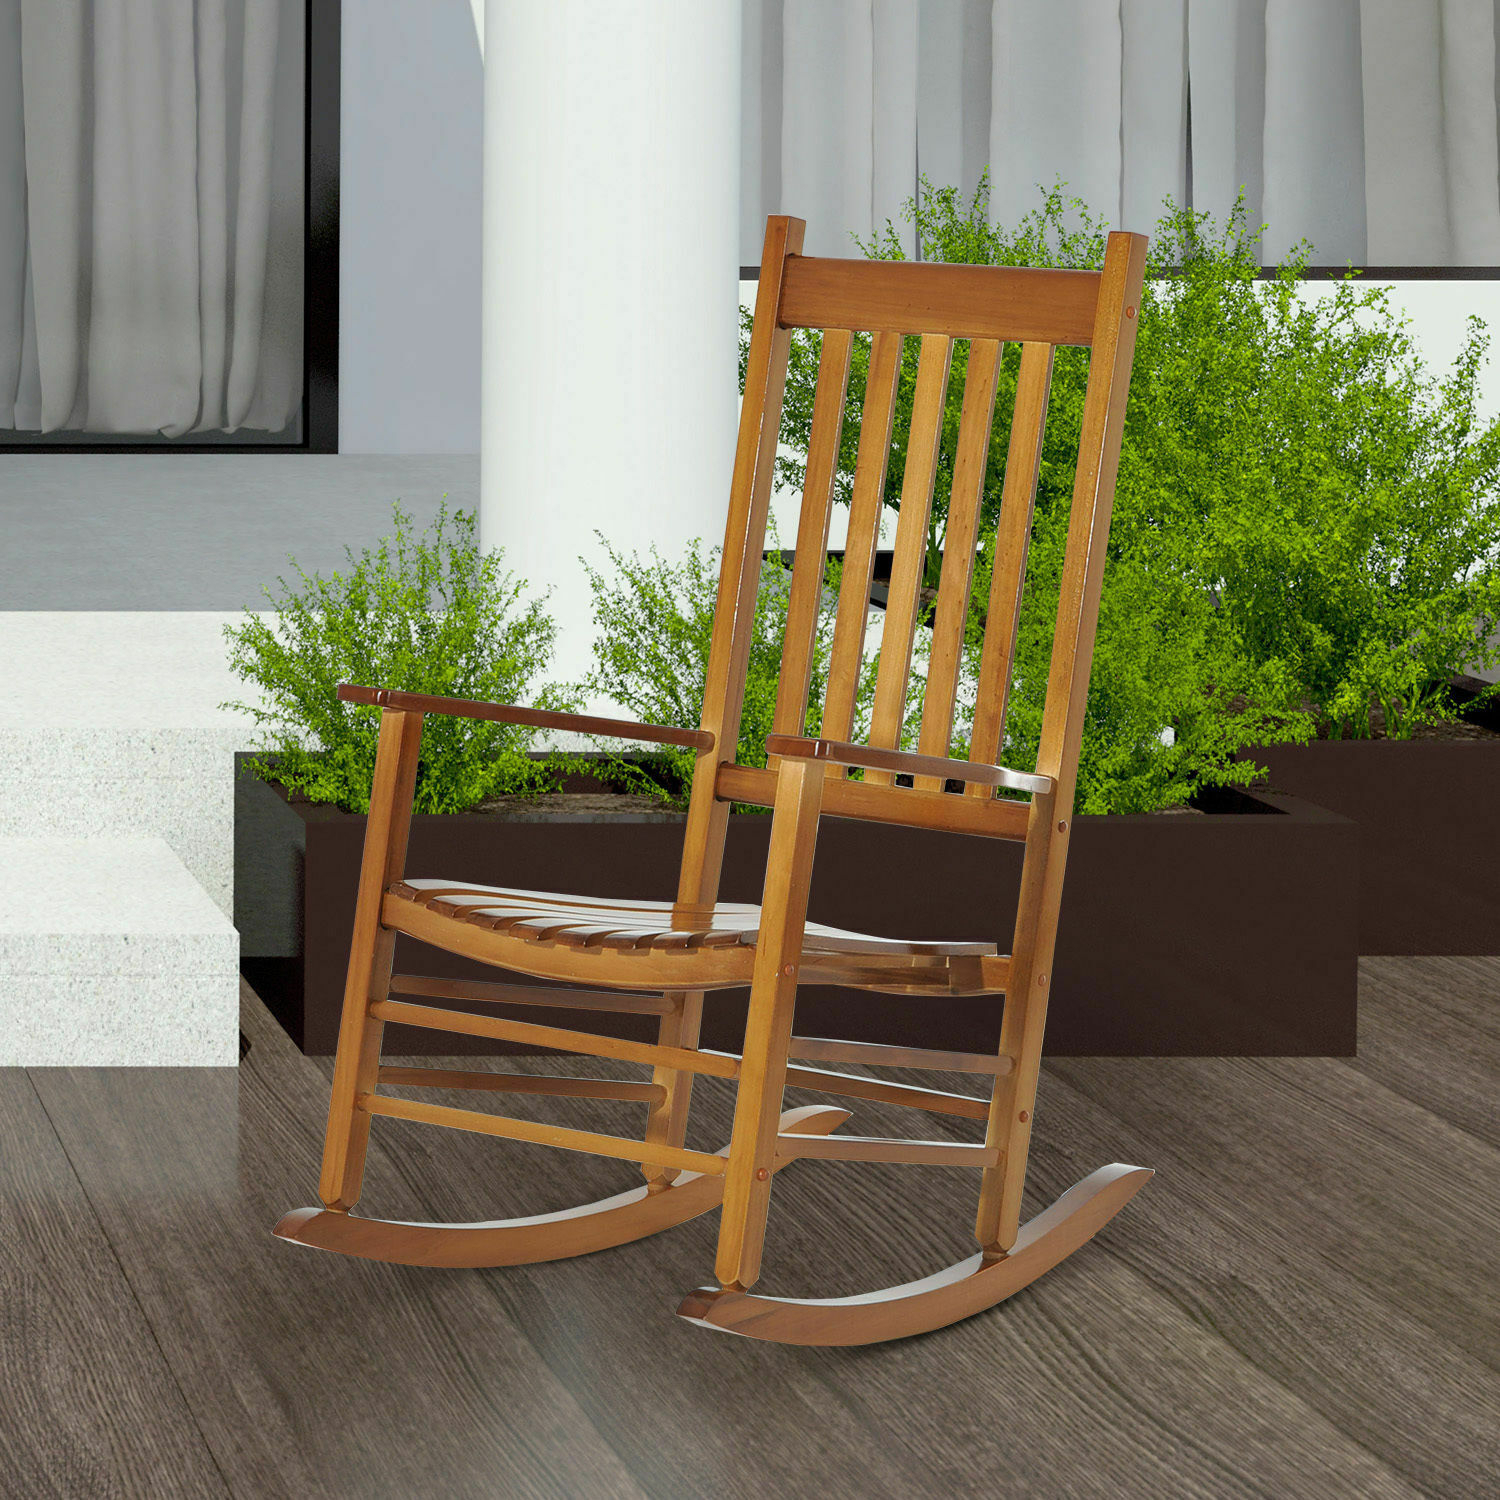 Porch Rocking Chair Solid Wood Home Traditional Bench Furniture Outdoor Within Traditional Wooden Porch Rocking Chairs (#15 of 20)